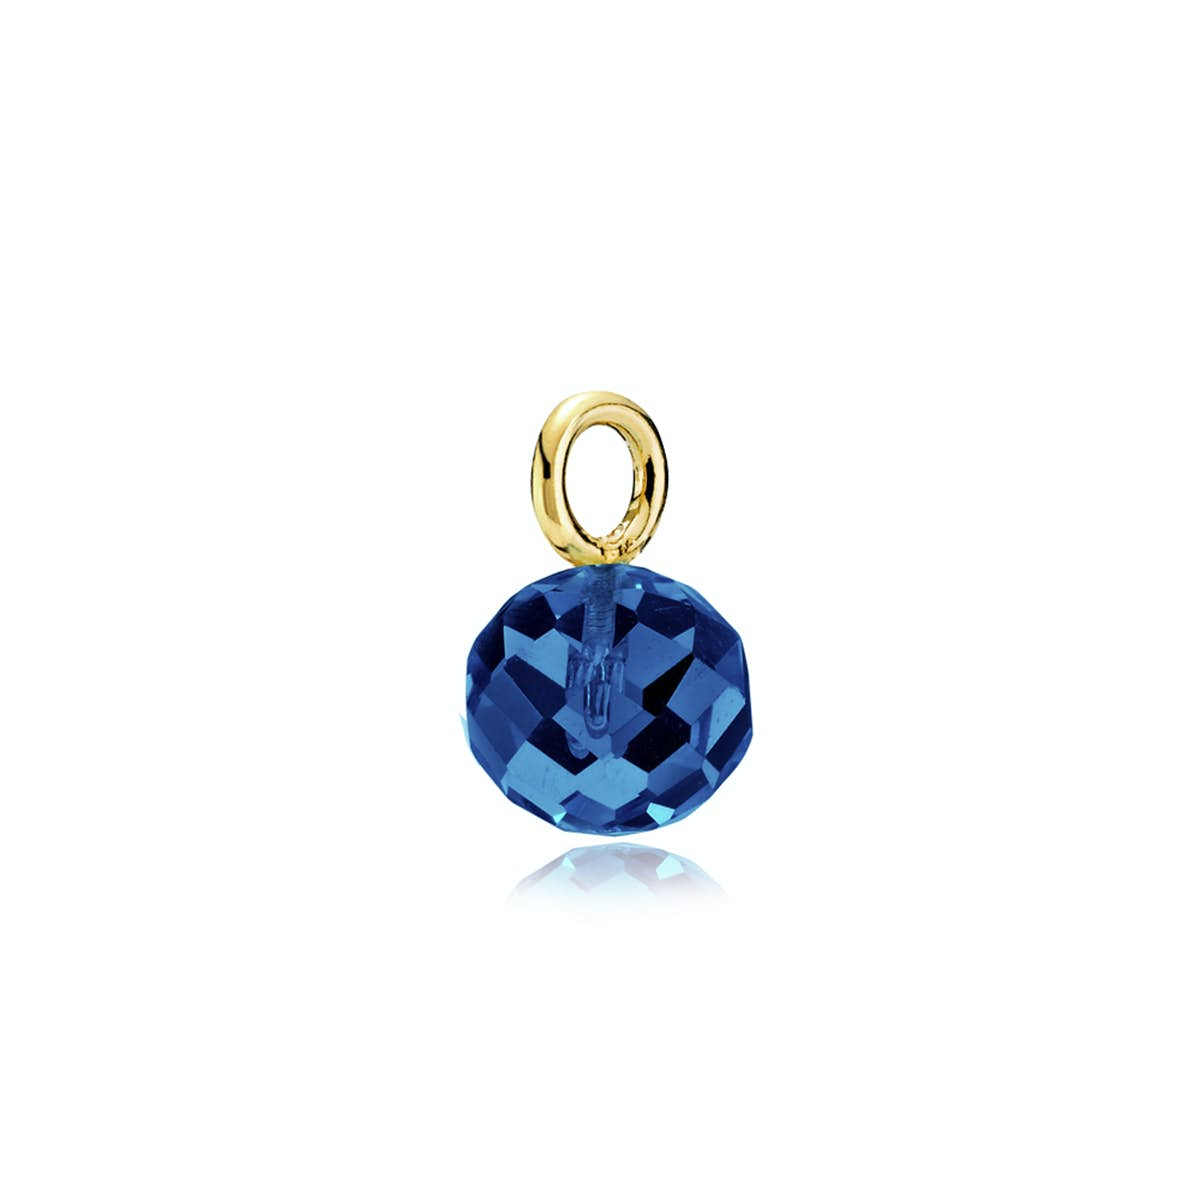 Marble Pendant Royalblue Crystal Glass from Izabel Camille in Goldplated-Silver Sterling 925